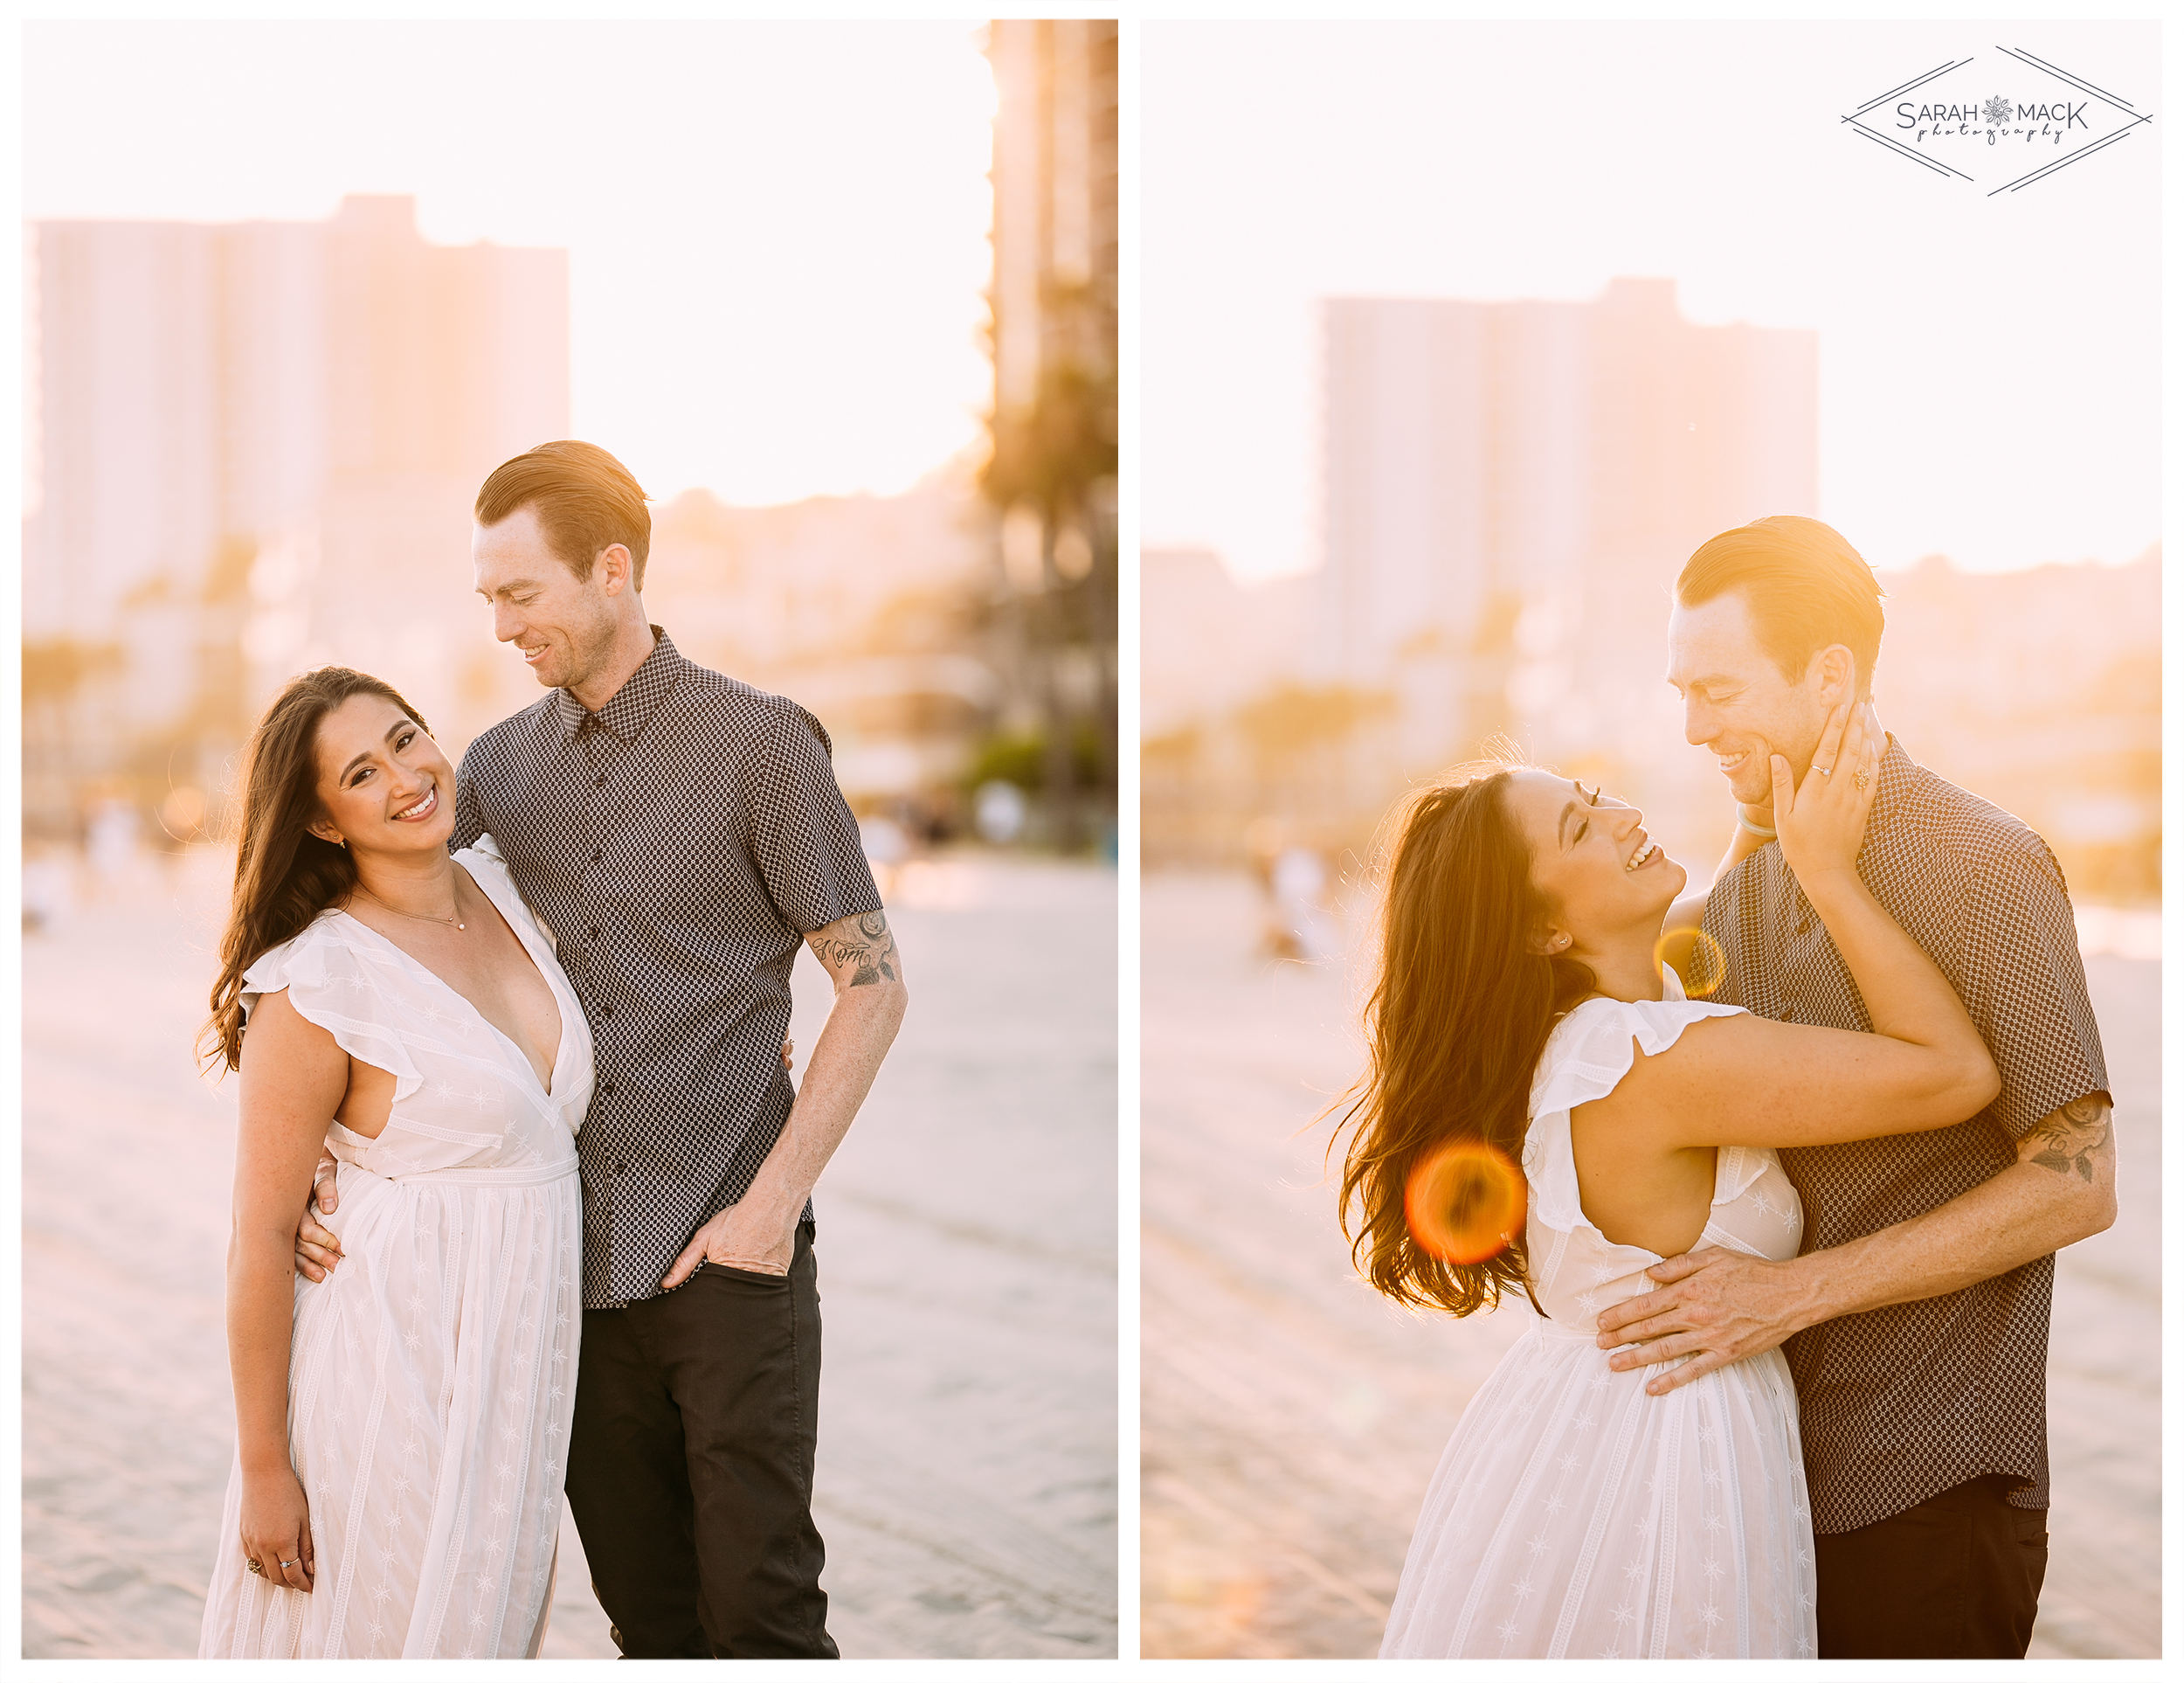 SE-Long-Beach-Engagement-Photography-12.jpg